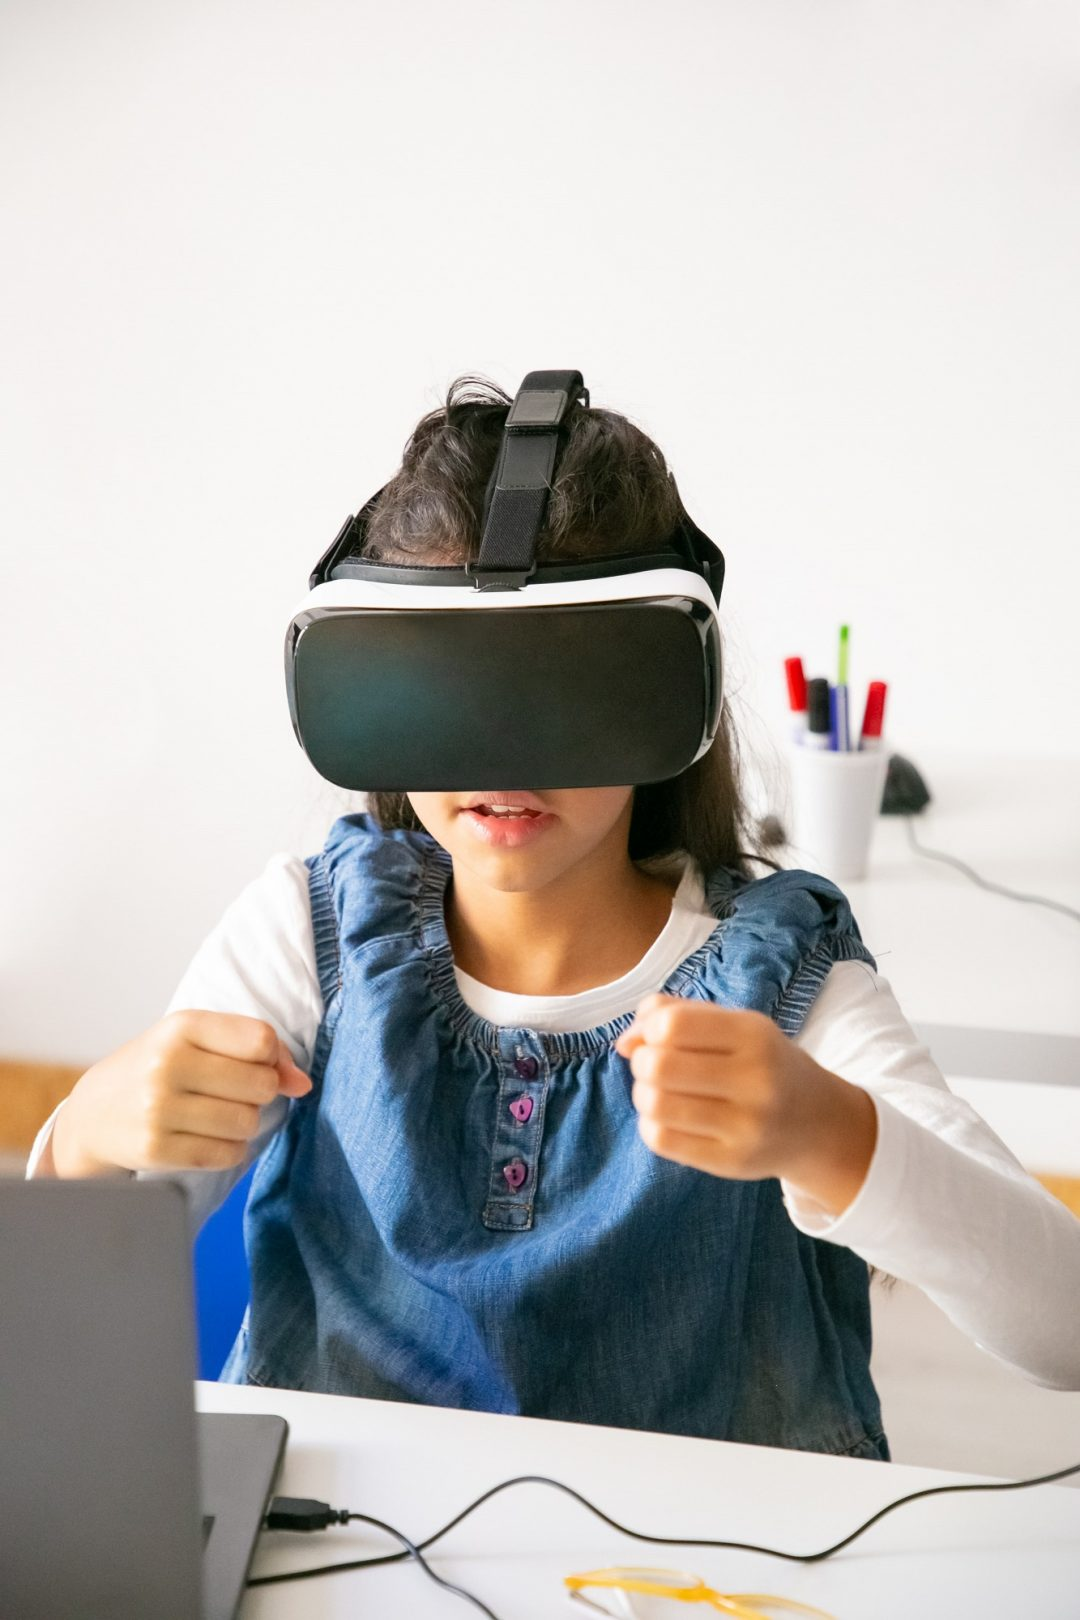 school girl playing with vr